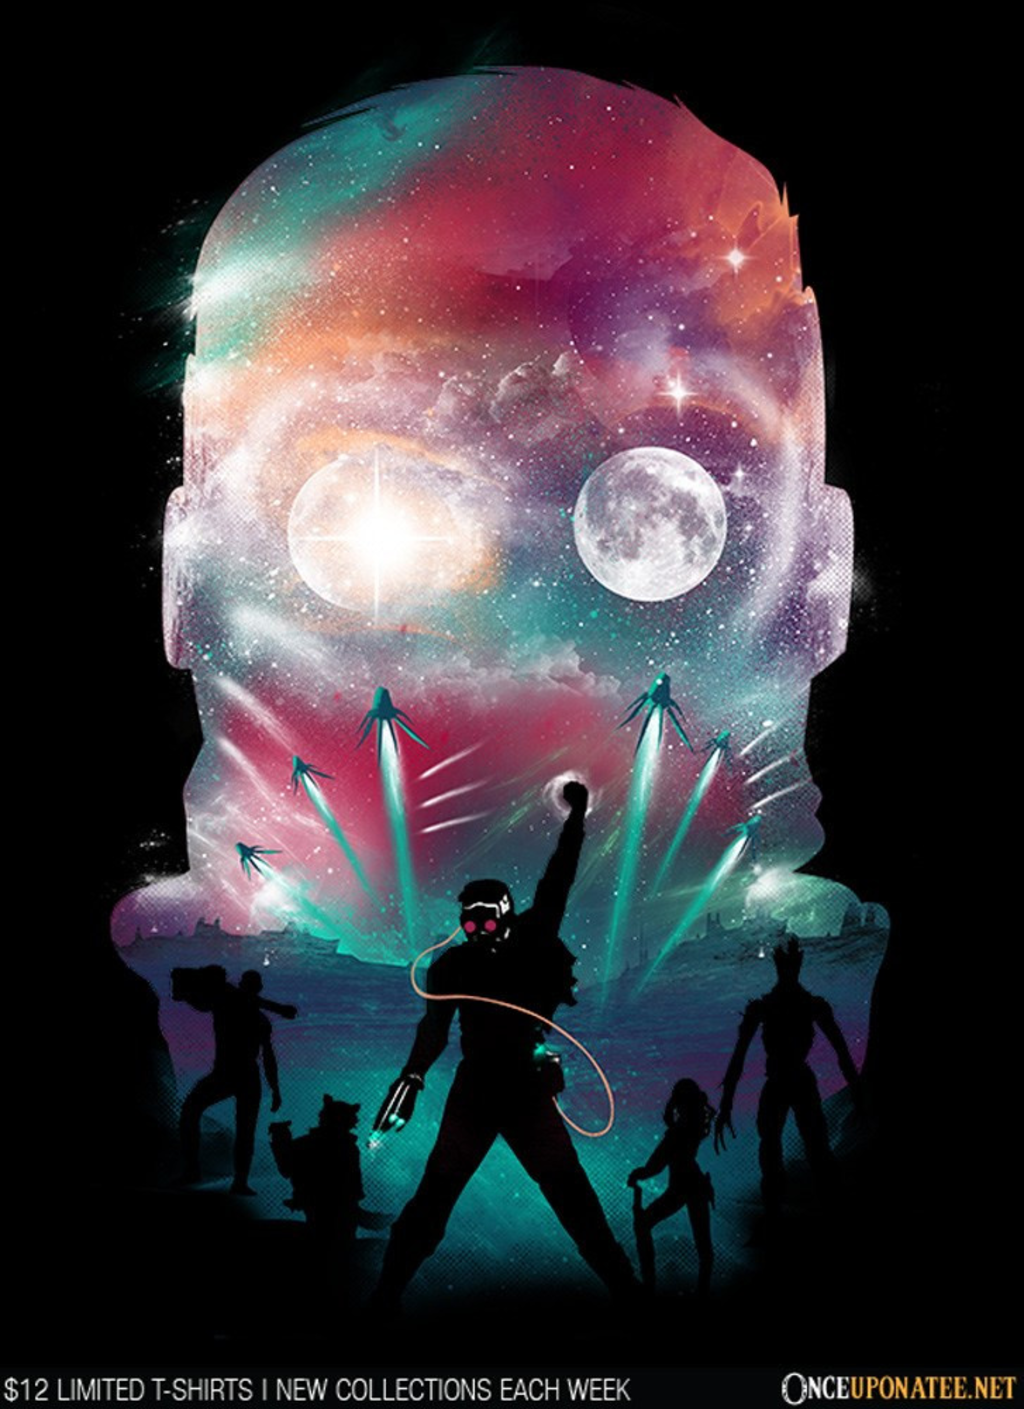 Once Upon a Tee: We Are the Guardians